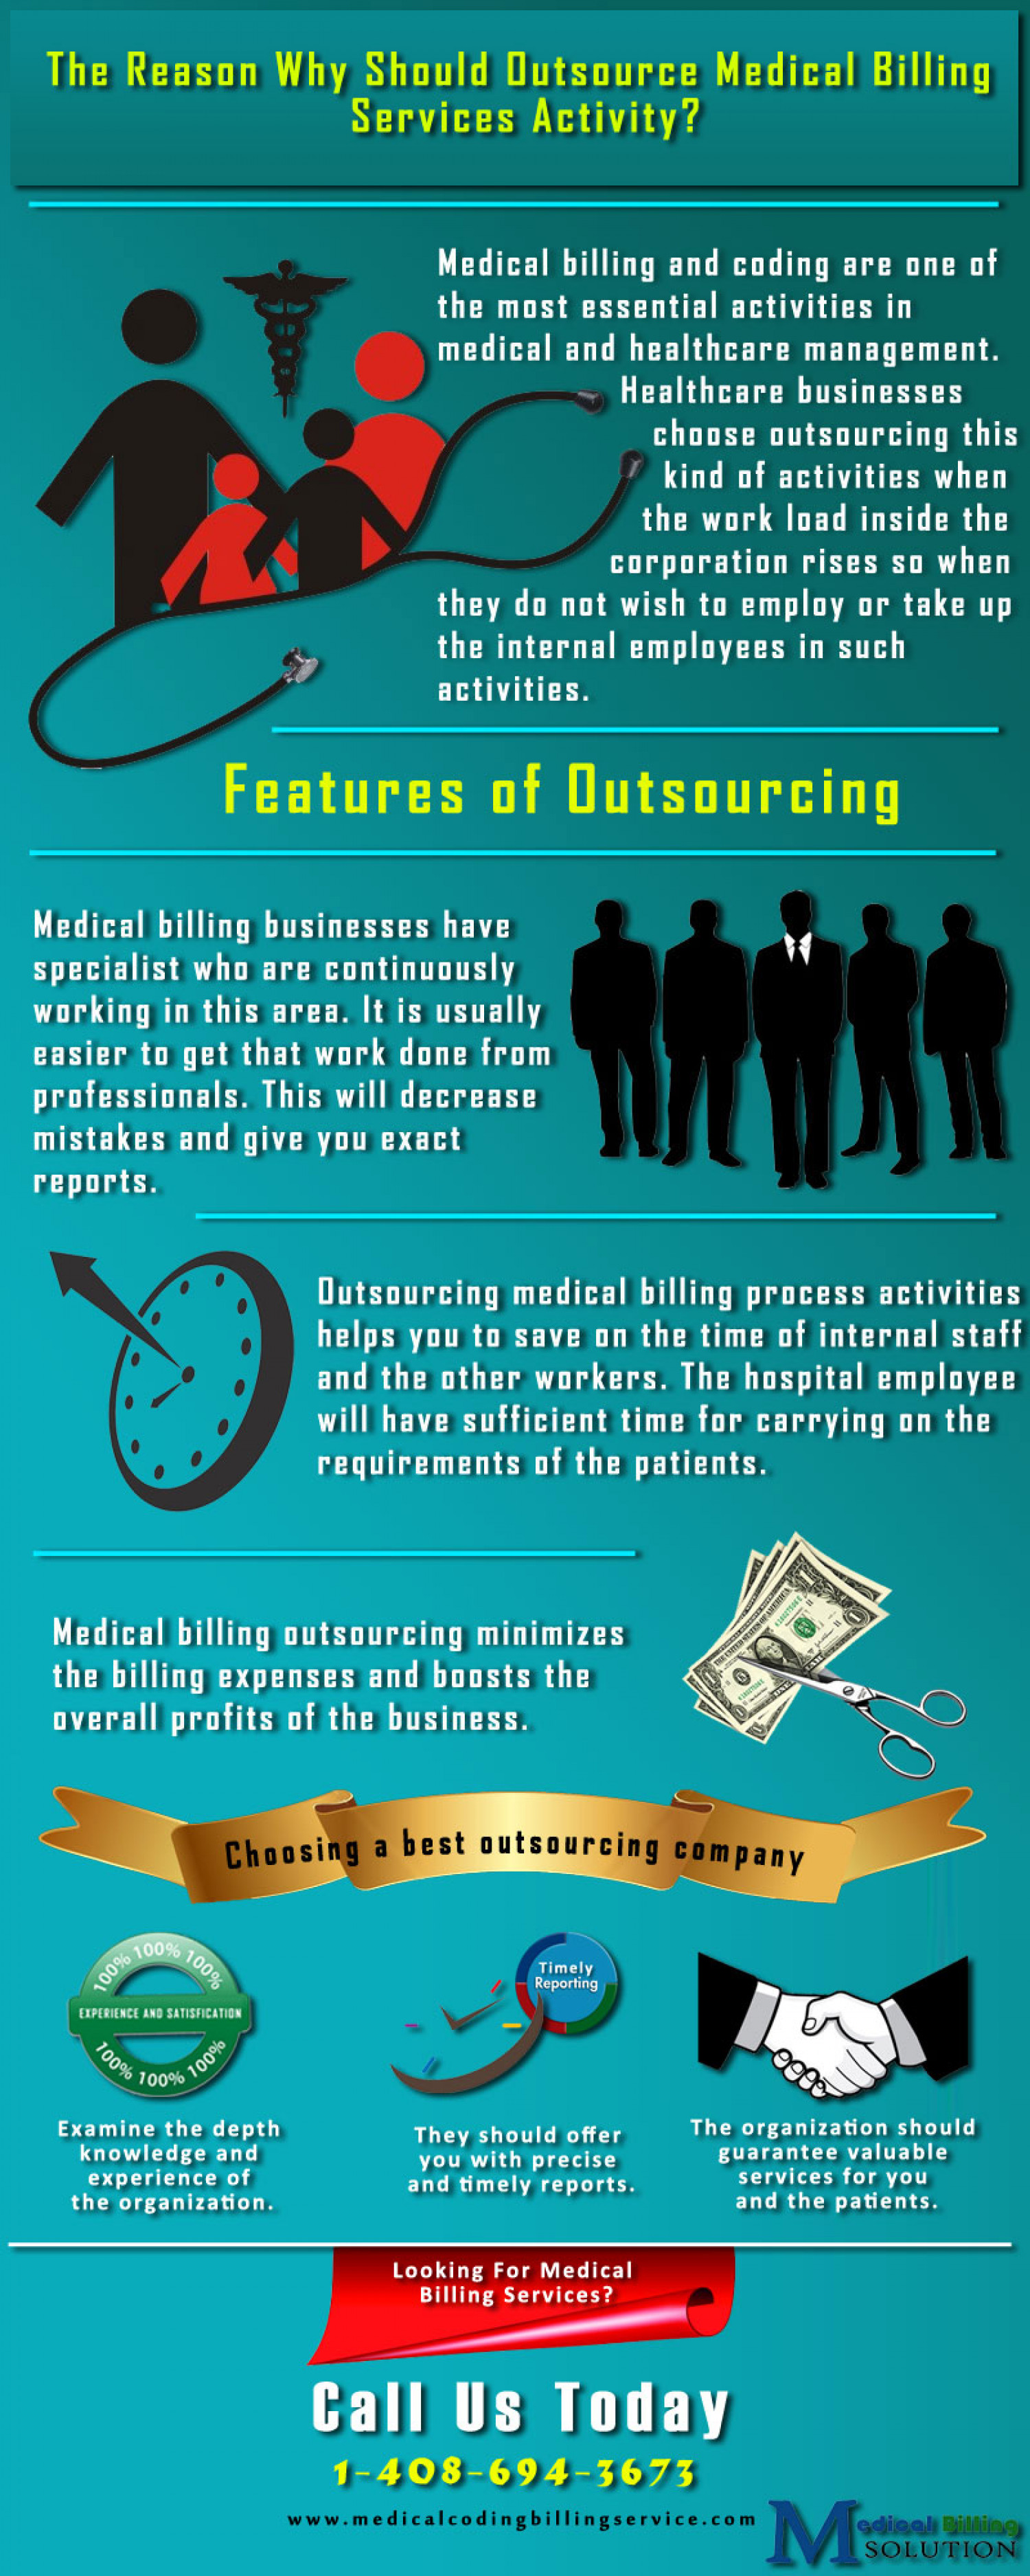 The Reason Why Should Outsource Medical Billing Services Activity? Infographic